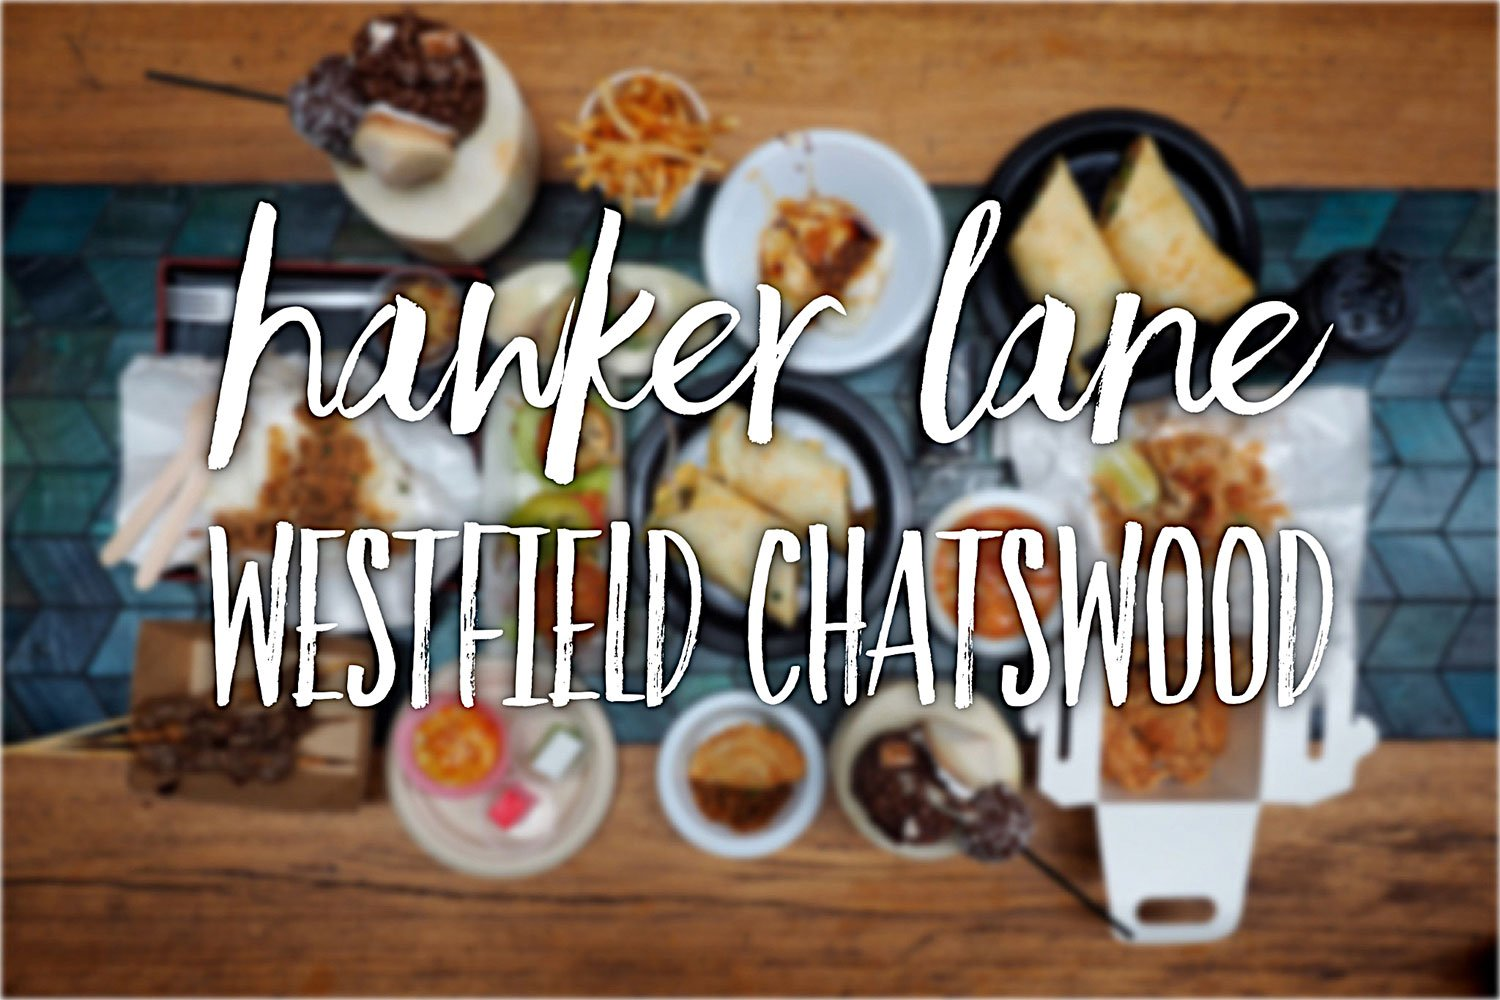 Hawker Lane, Chatswood: Sydney Food Blog Review